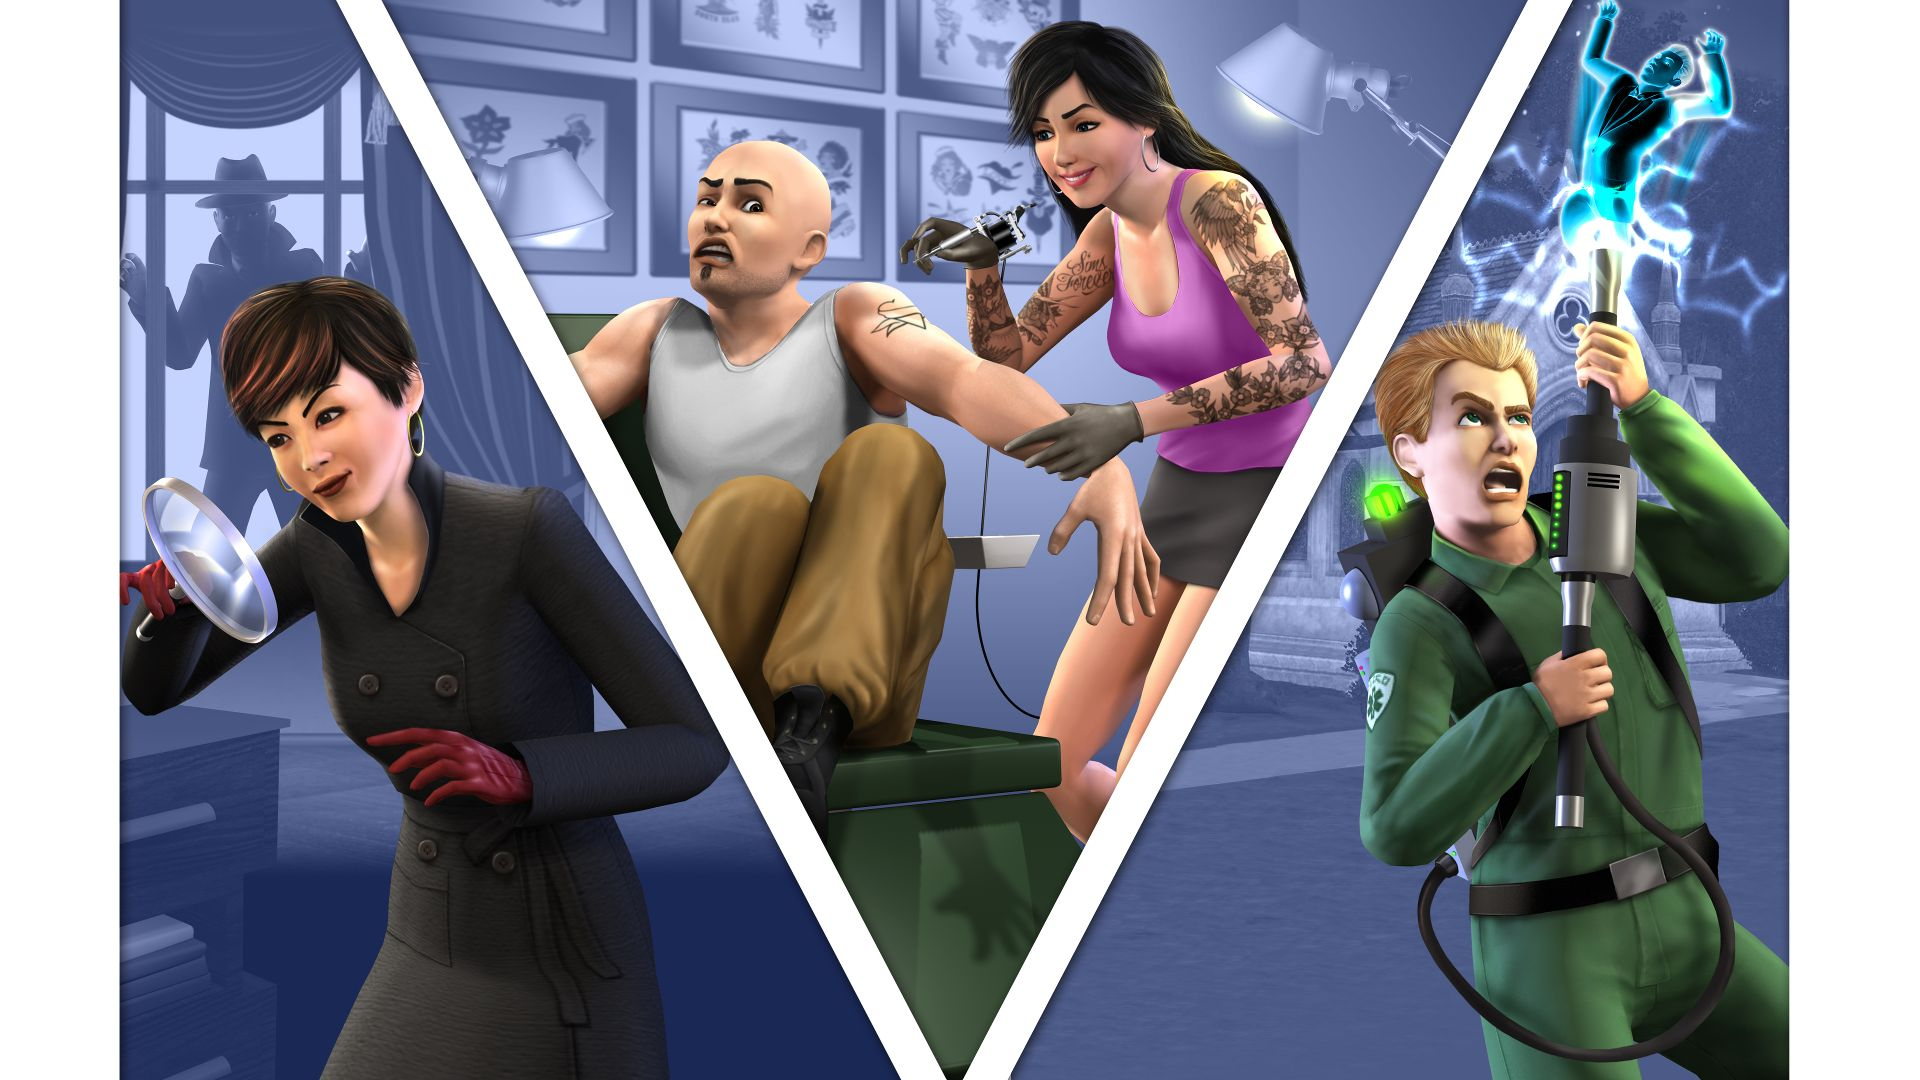 the sims 3 The sims series returns with the next incarnation of the popular life-simulation game.